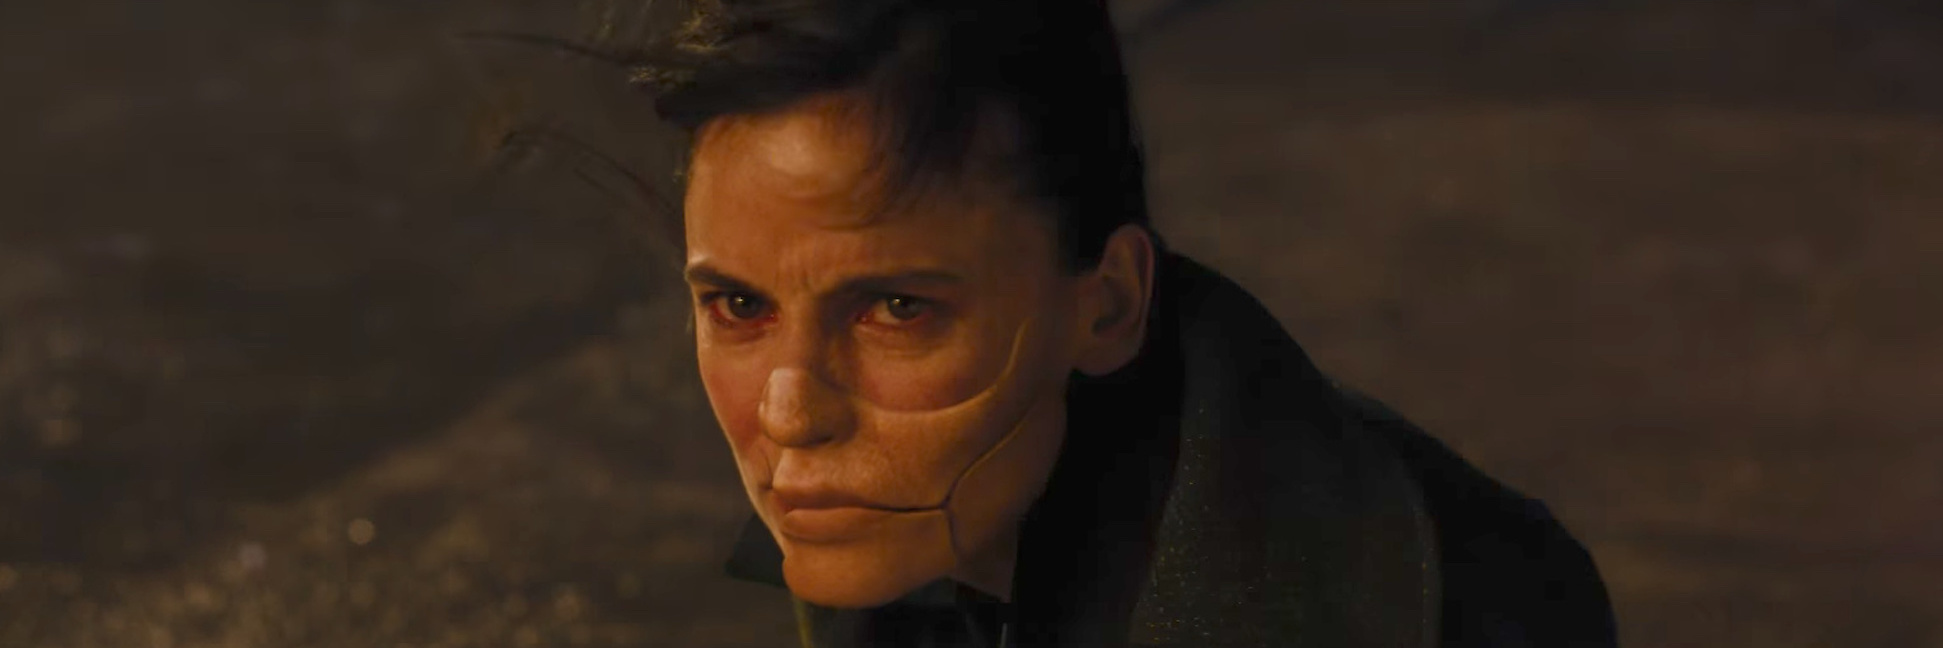 Dr. Maru from the movie Wonder Woman, wearing a mask covering half her face